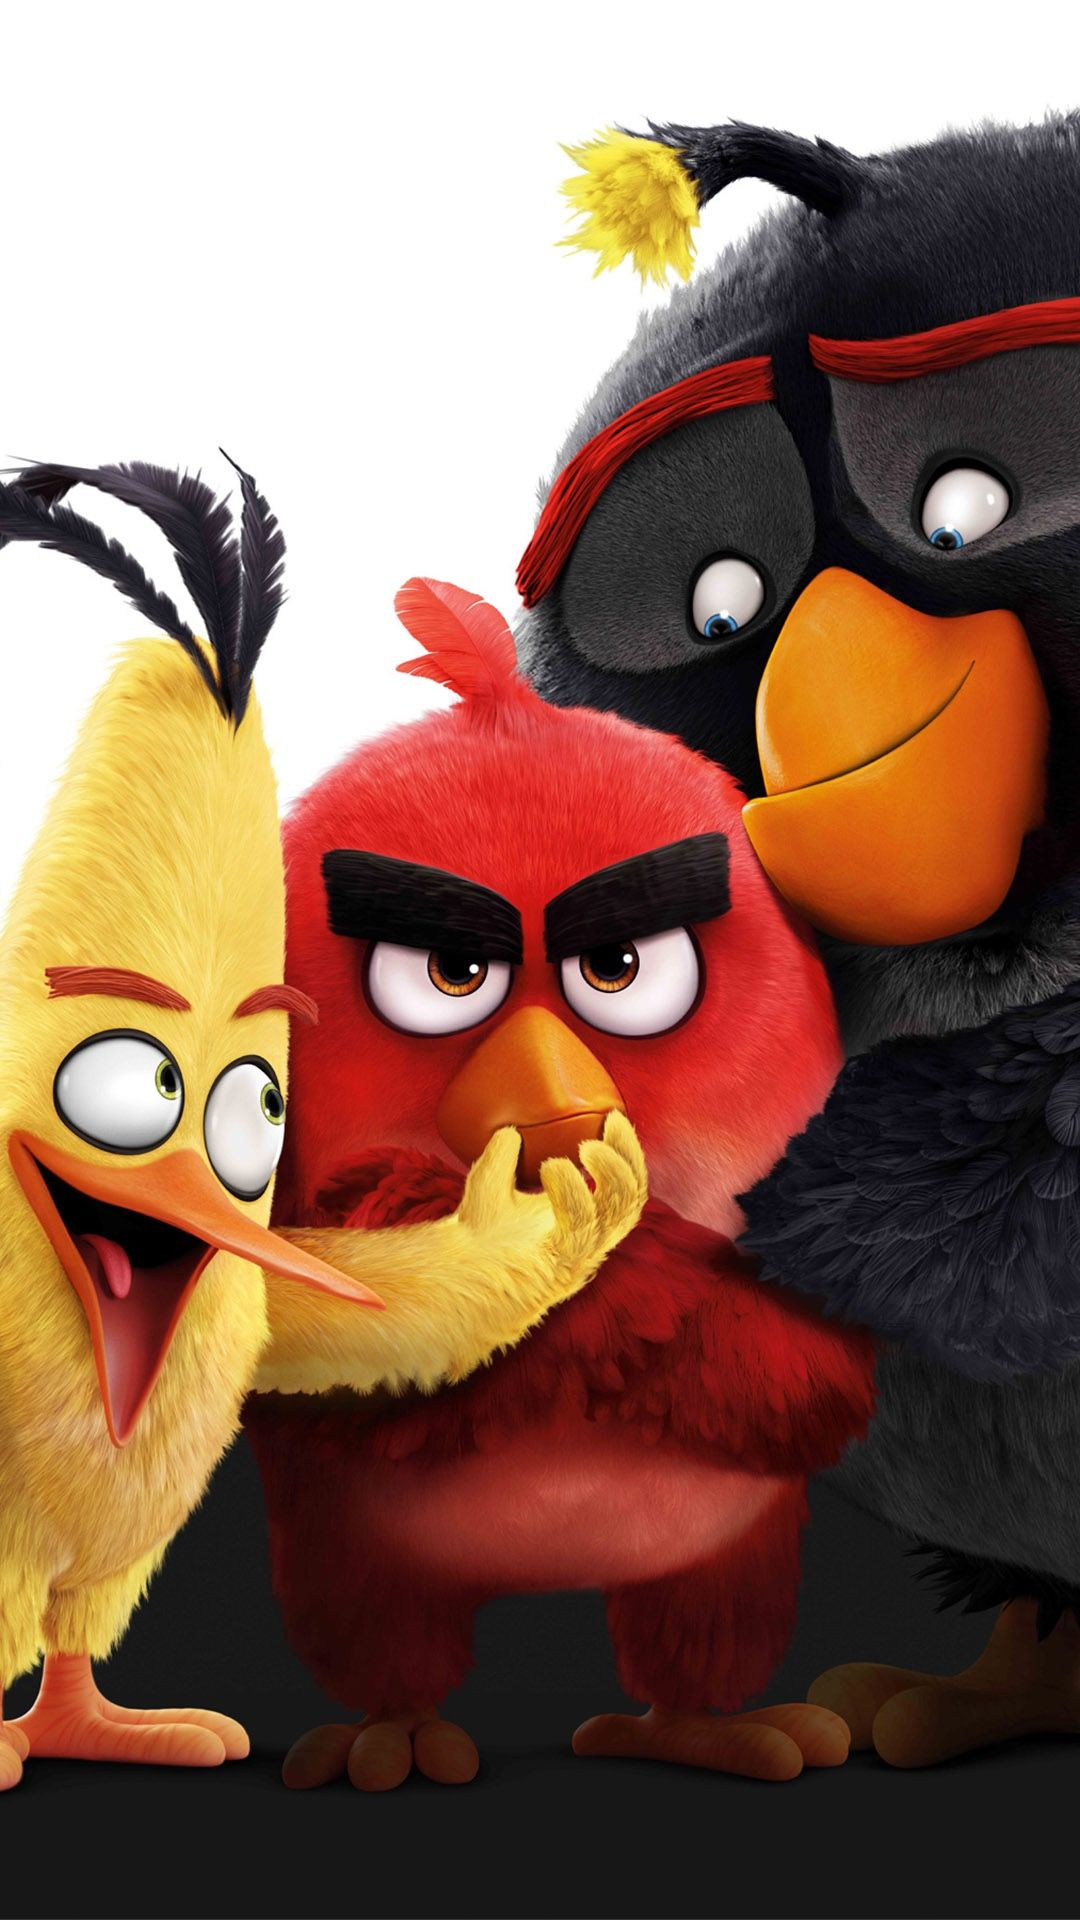 Pin By Taha Blaze On Iphone Wallpapers Angry Birds Characters Cute Cartoon Wallpapers Angry Birds